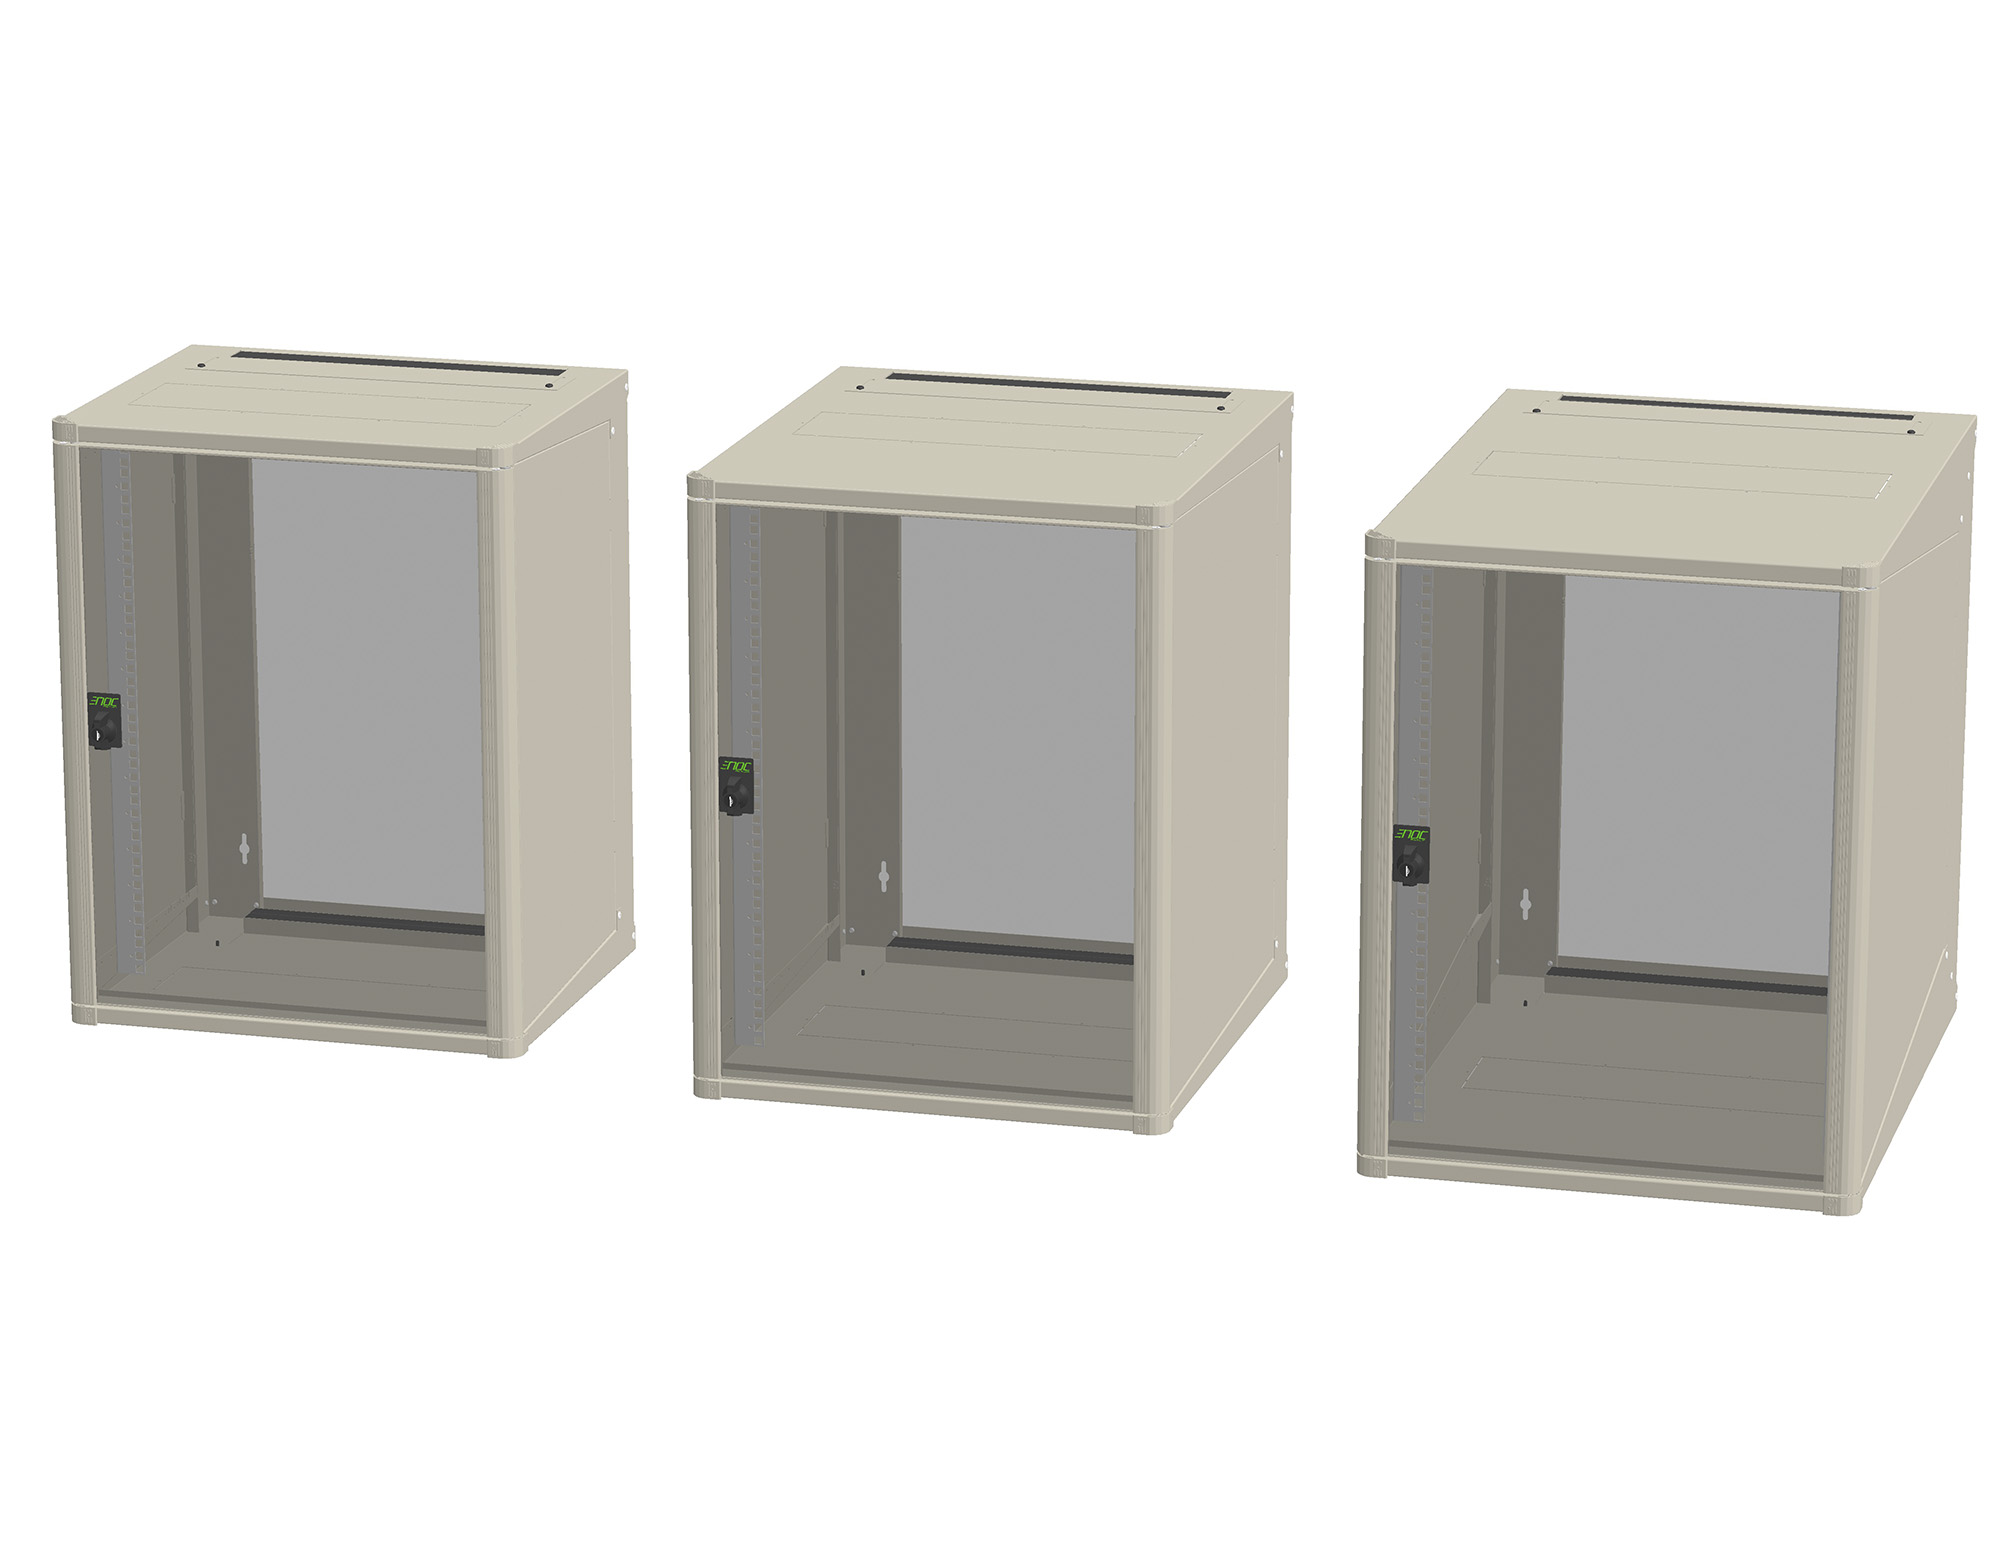 Nsve Wall Cabinet Network Cabinets Enclosures Enoc System